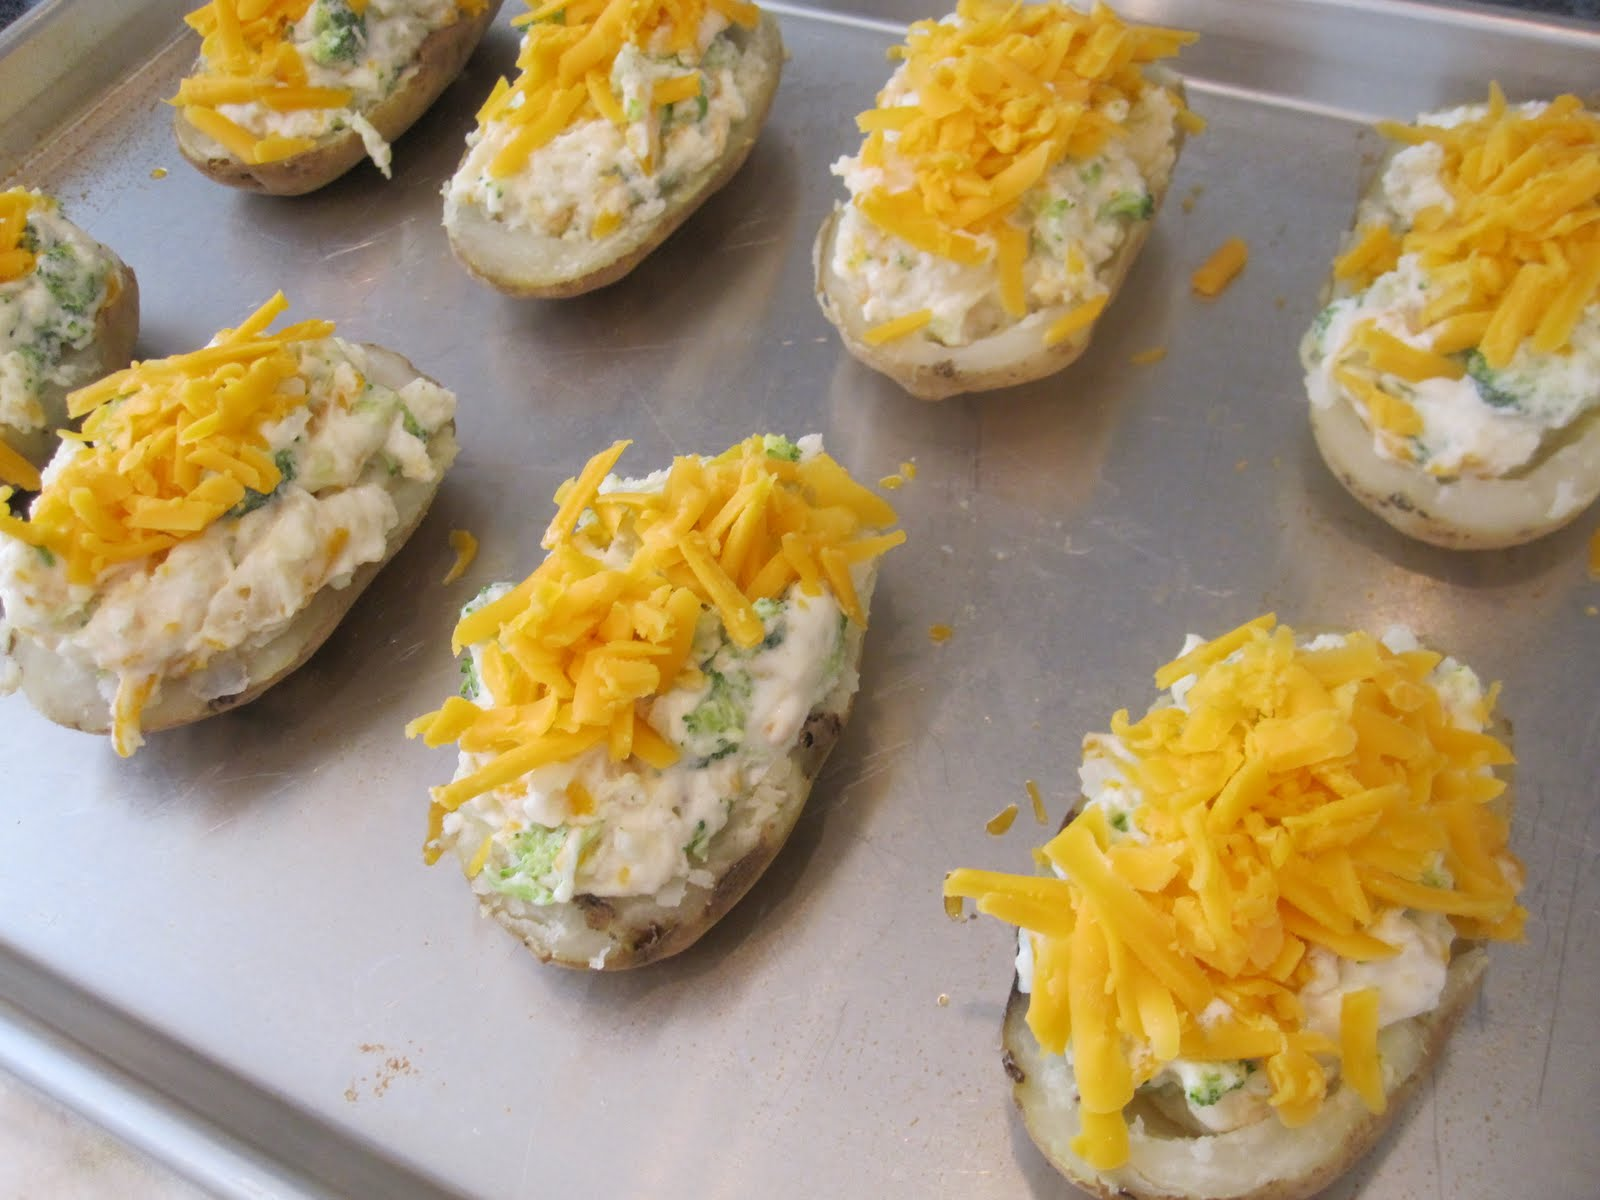 Broccoli and Cheese Twice Baked Potatoes - Life In The Lofthouse